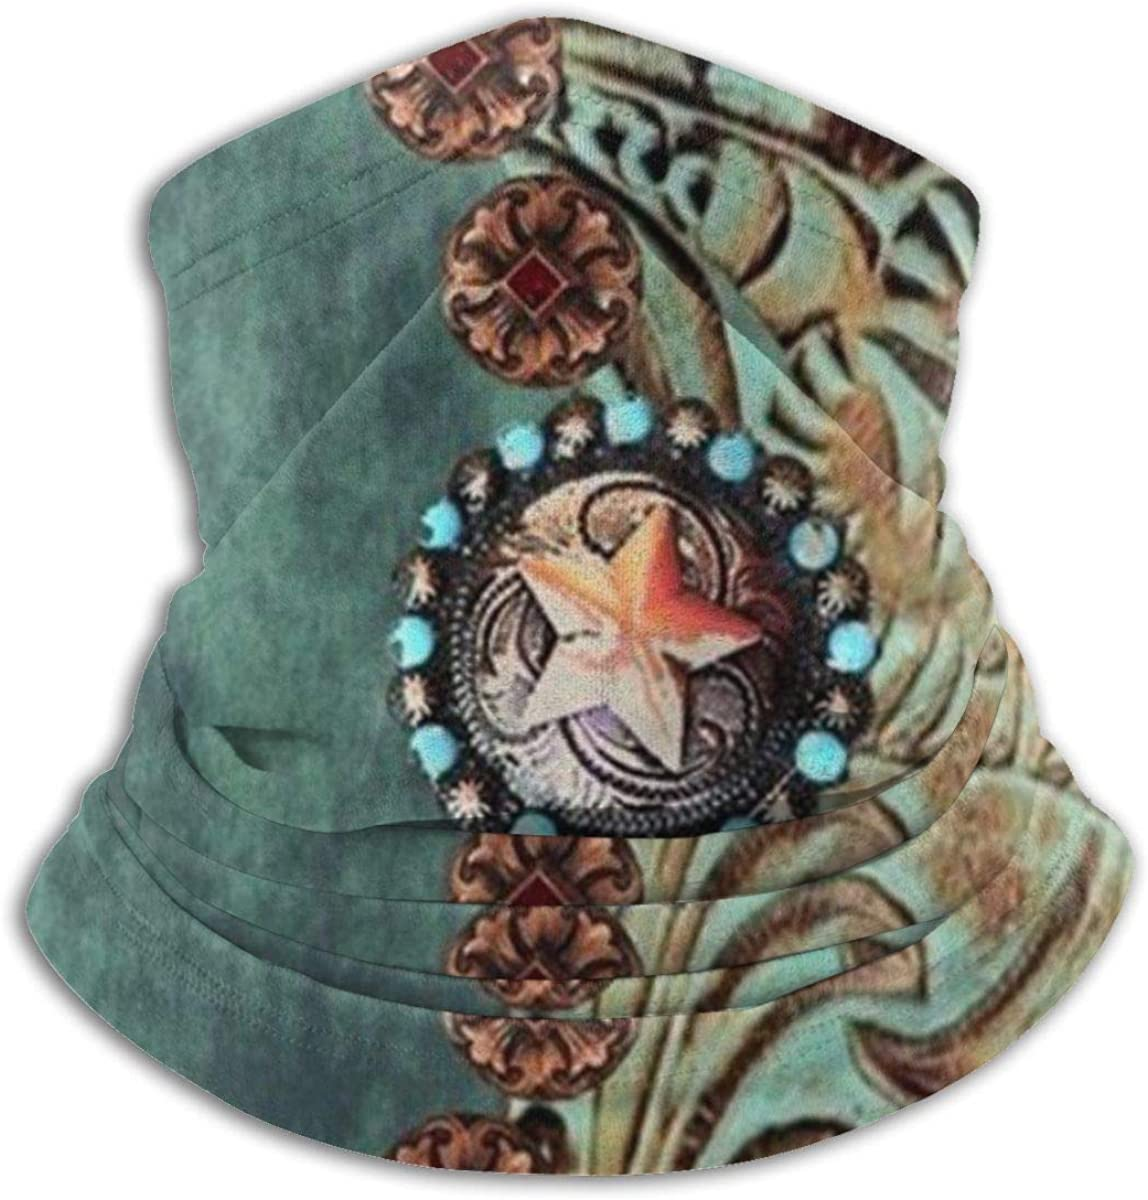 CLERO Scarf Fleece Neck Warmer Leather Price reduction Regular store Tooled Turquoise Western